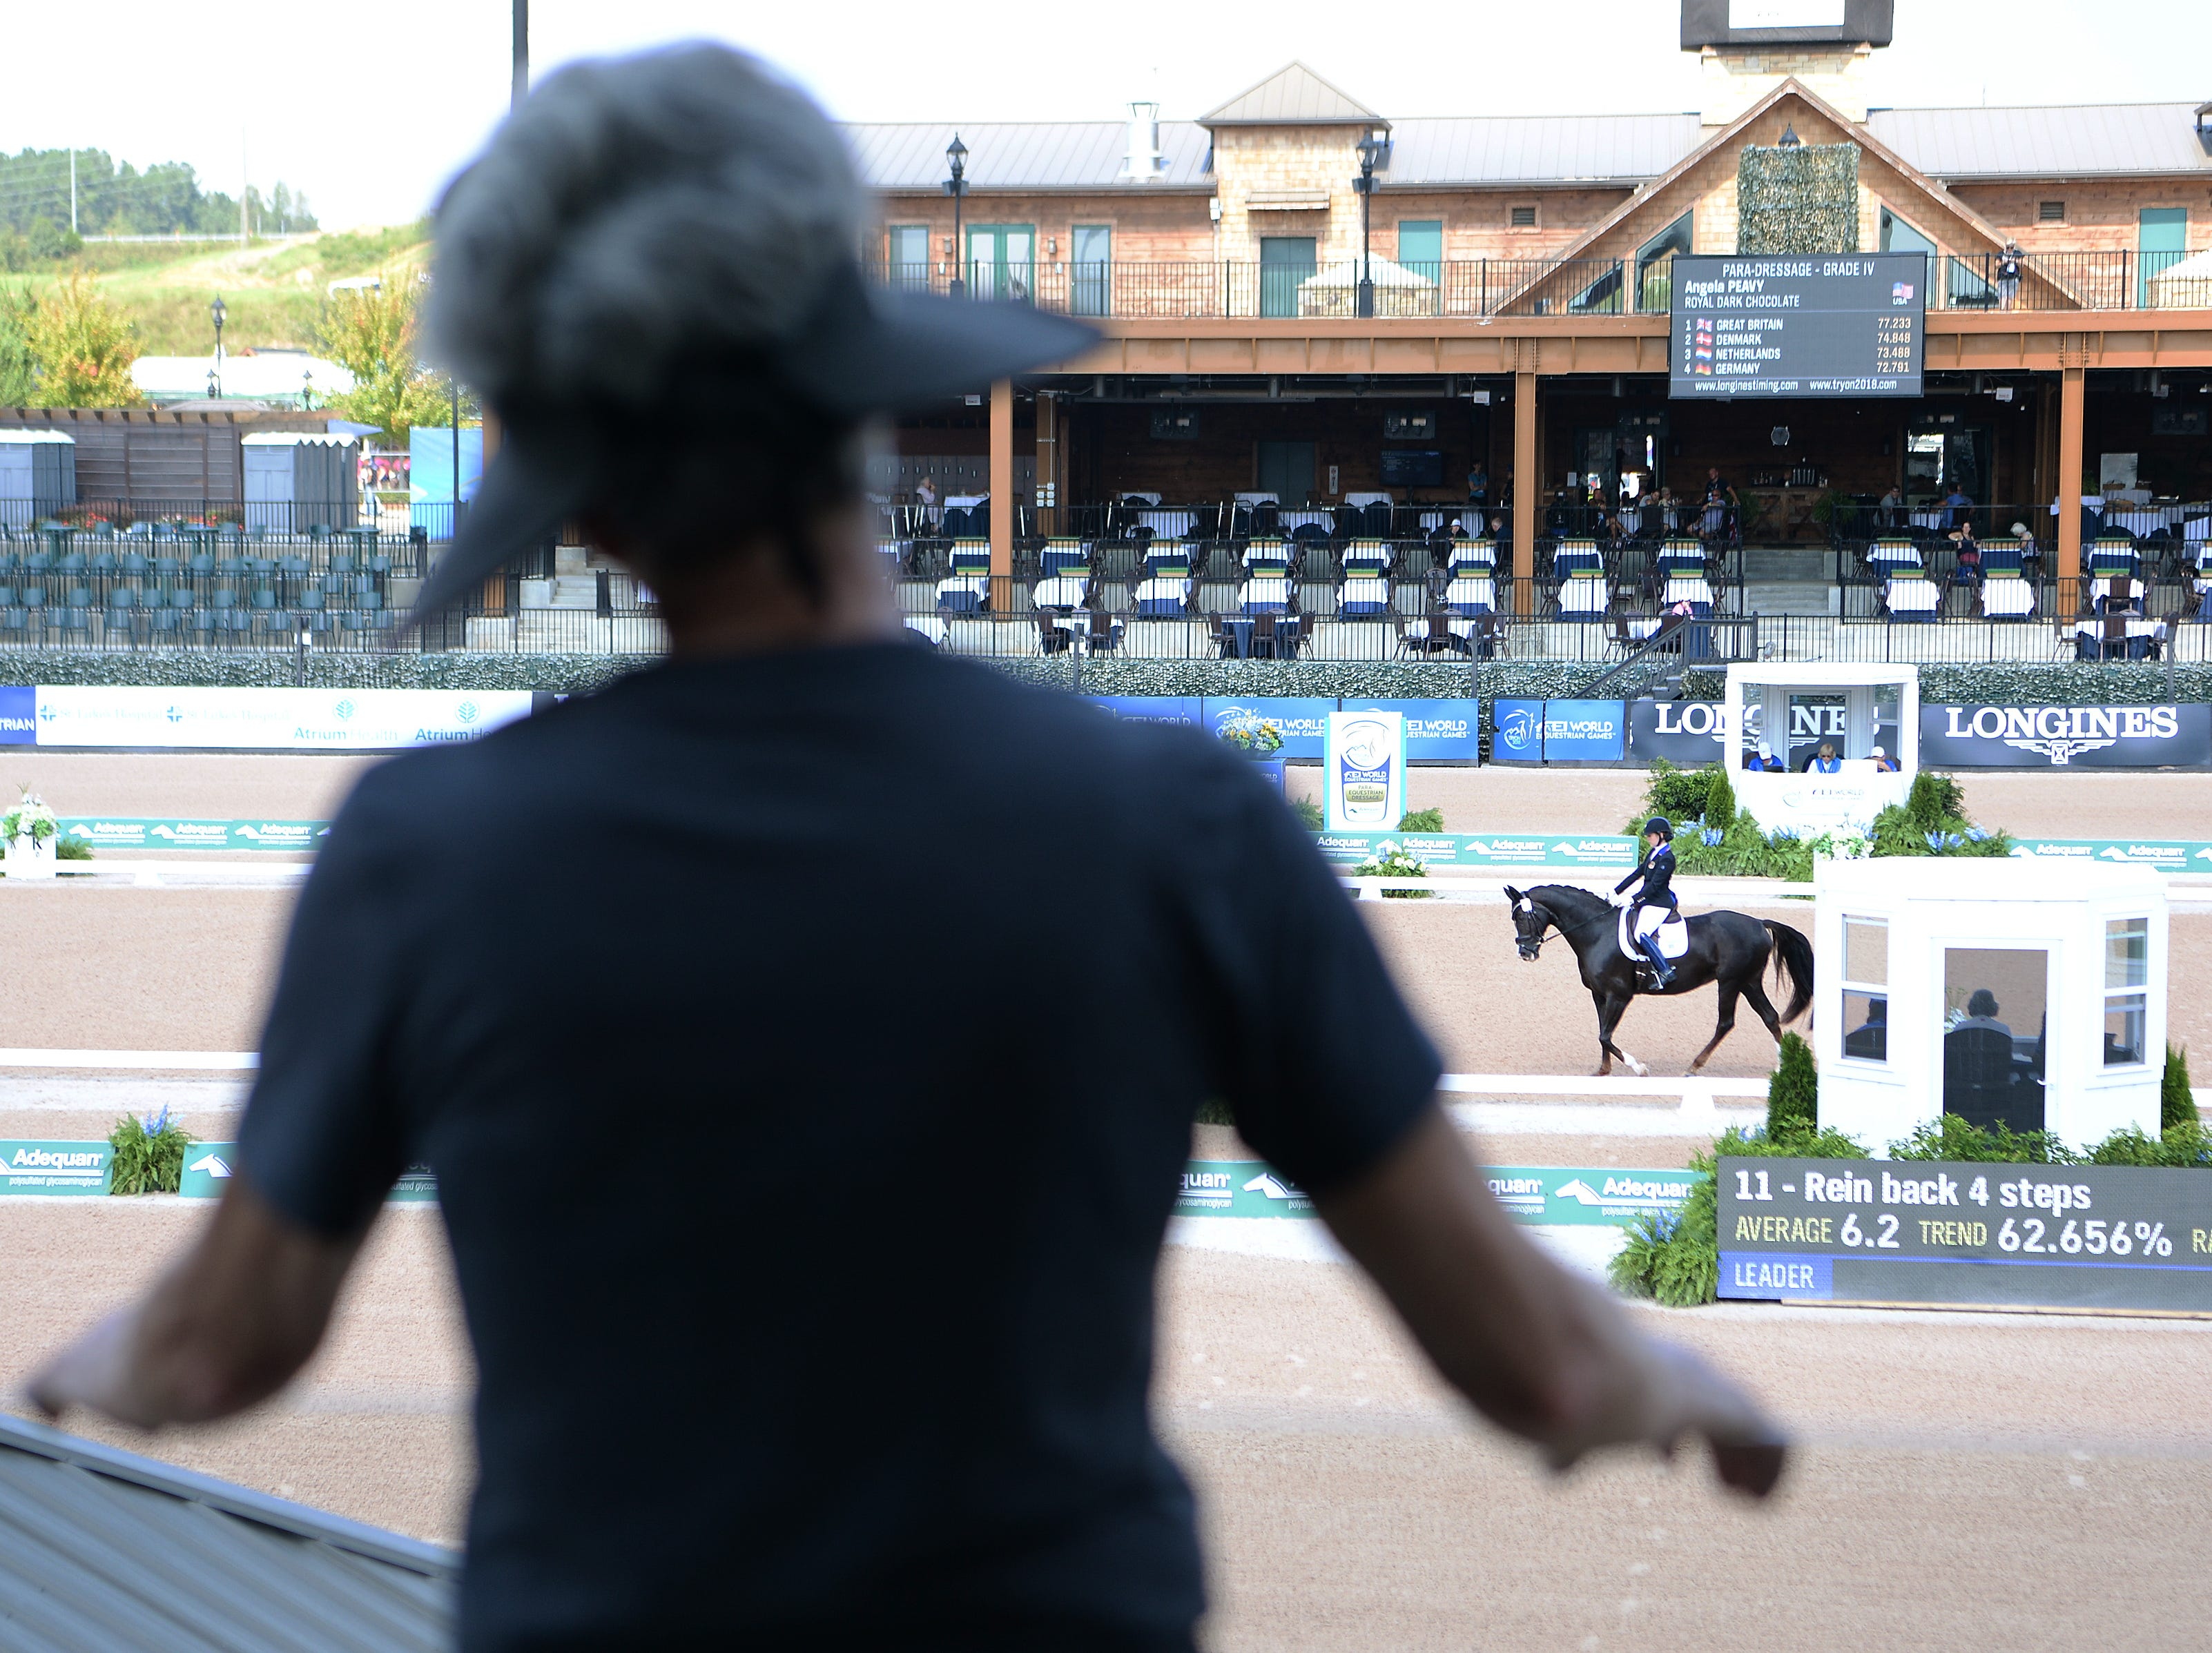 Marlene Whitaker, of Fairview, watches American Angela Peavy perform in the Para-dressage event of the FEI World Equestrian Games at the Tryon International Equestrian Center on Sept. 20, 2018. Whitaker created the choreography for Peavy's freestyle competition.